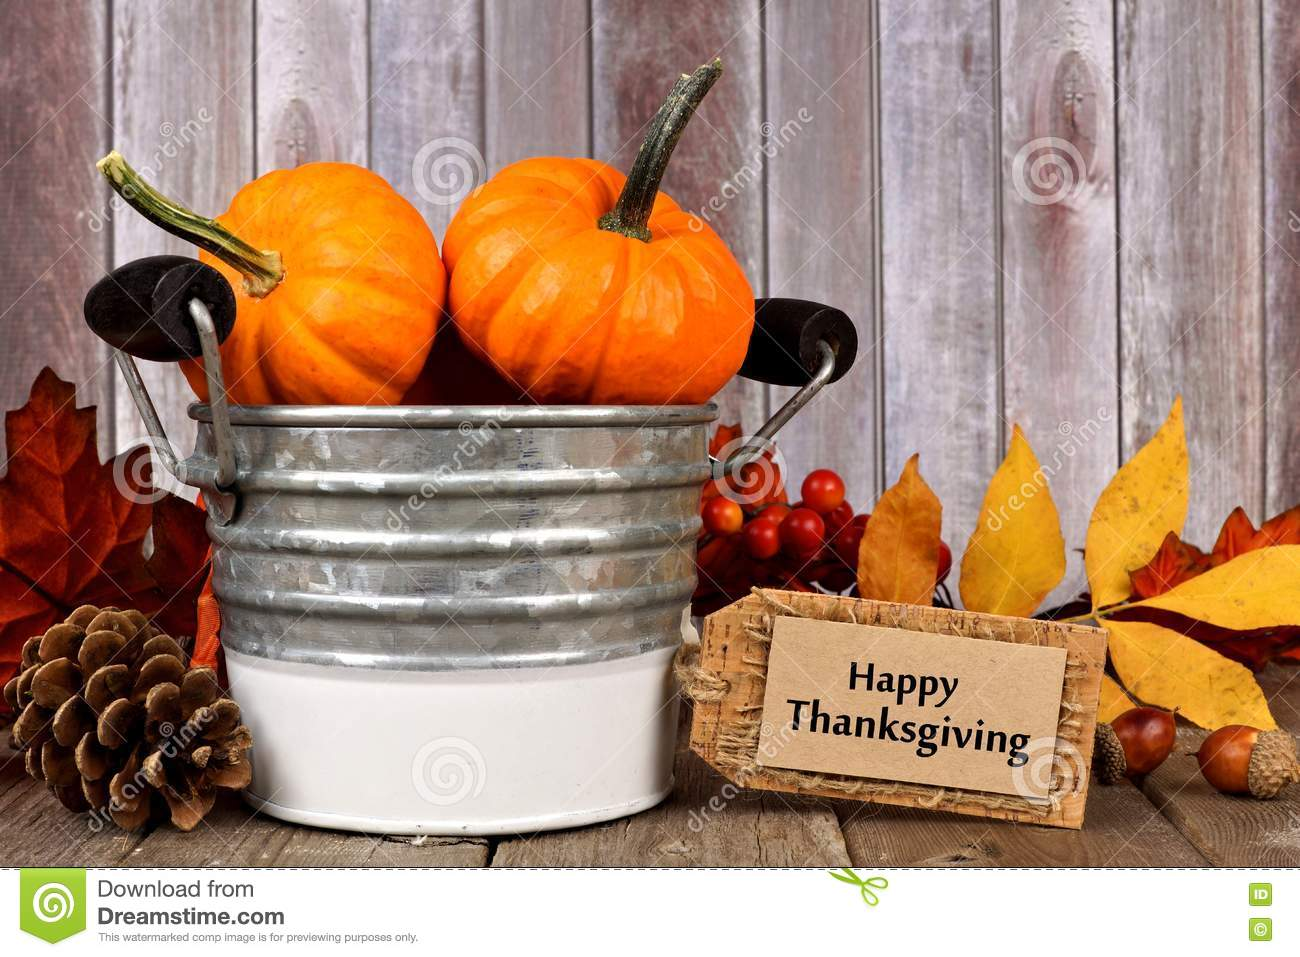 Happy Thanksgiving Tag And Autumn Decor With Rustic Wood Background Stock Photo